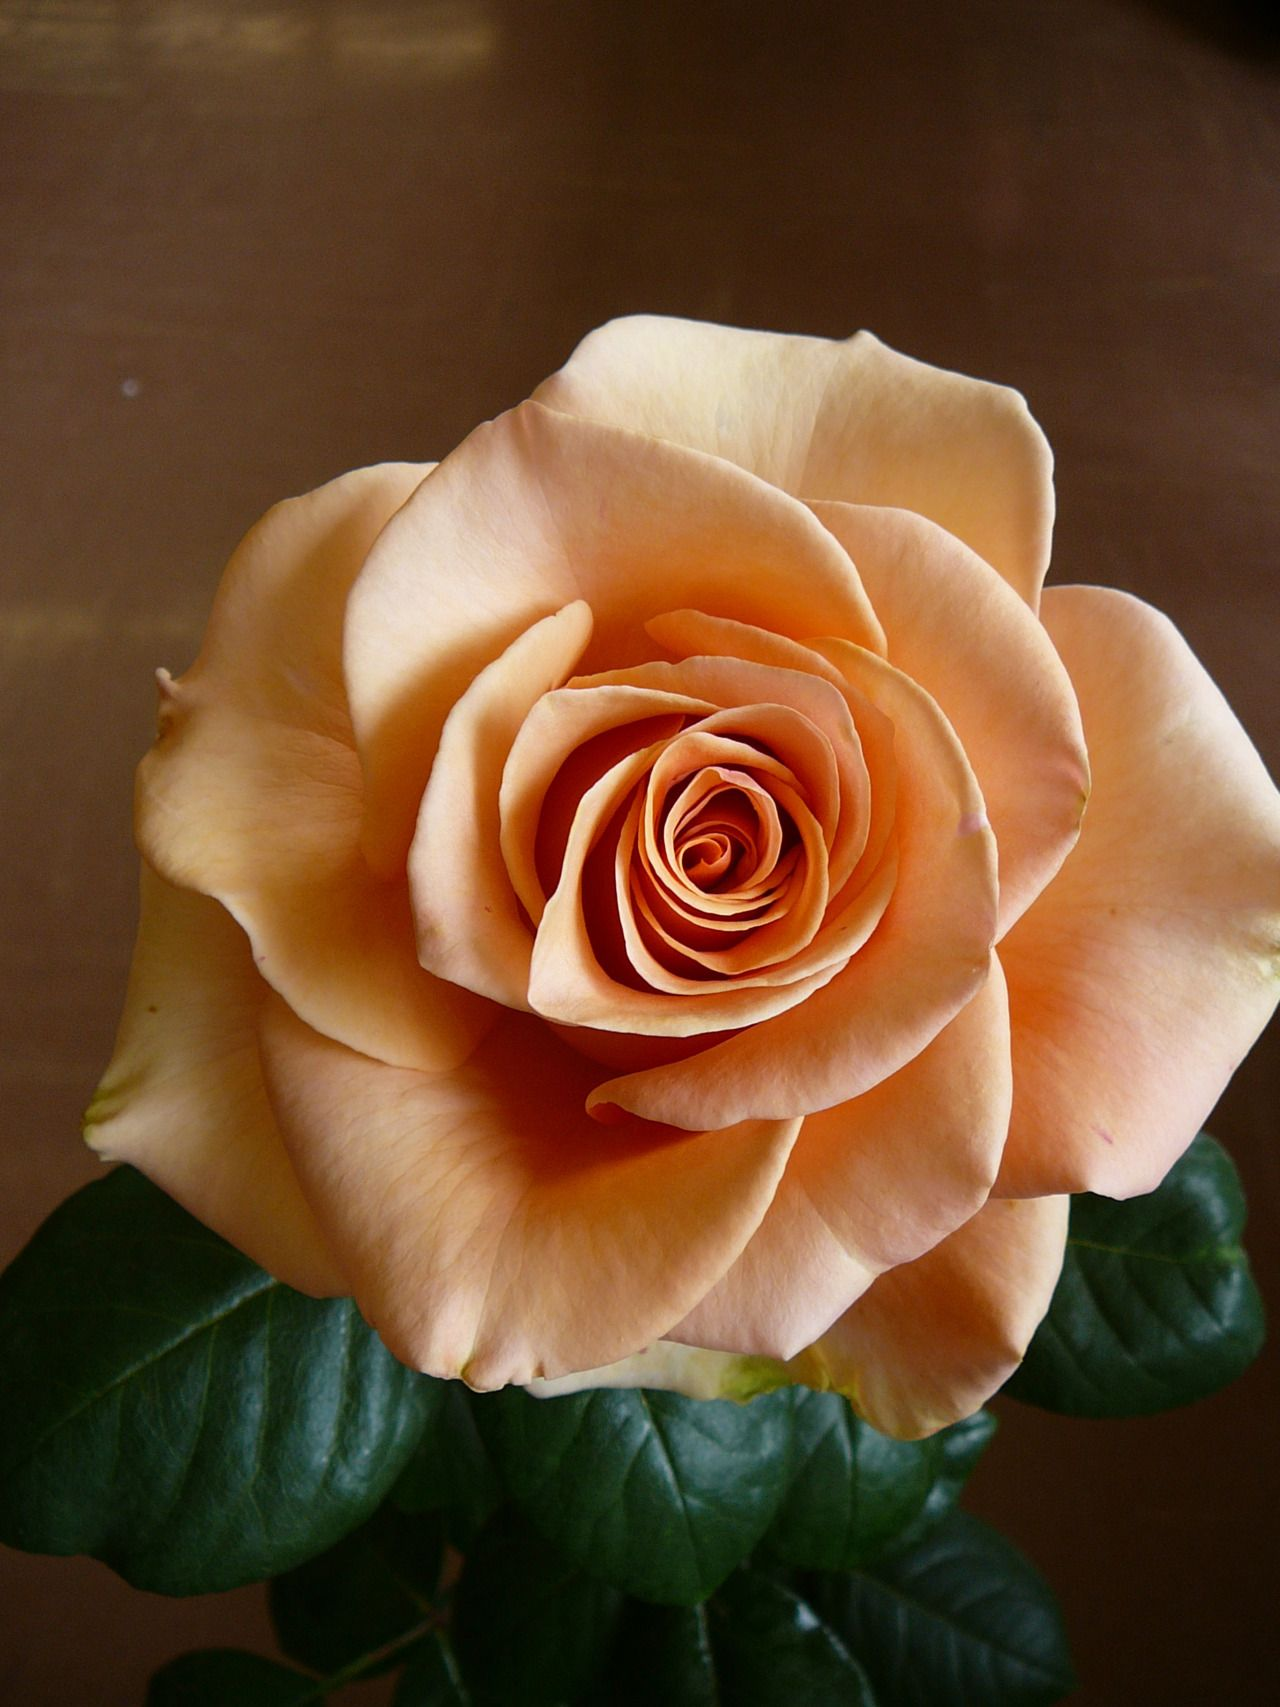 marilyn monroe rose this color is burned into the brains of